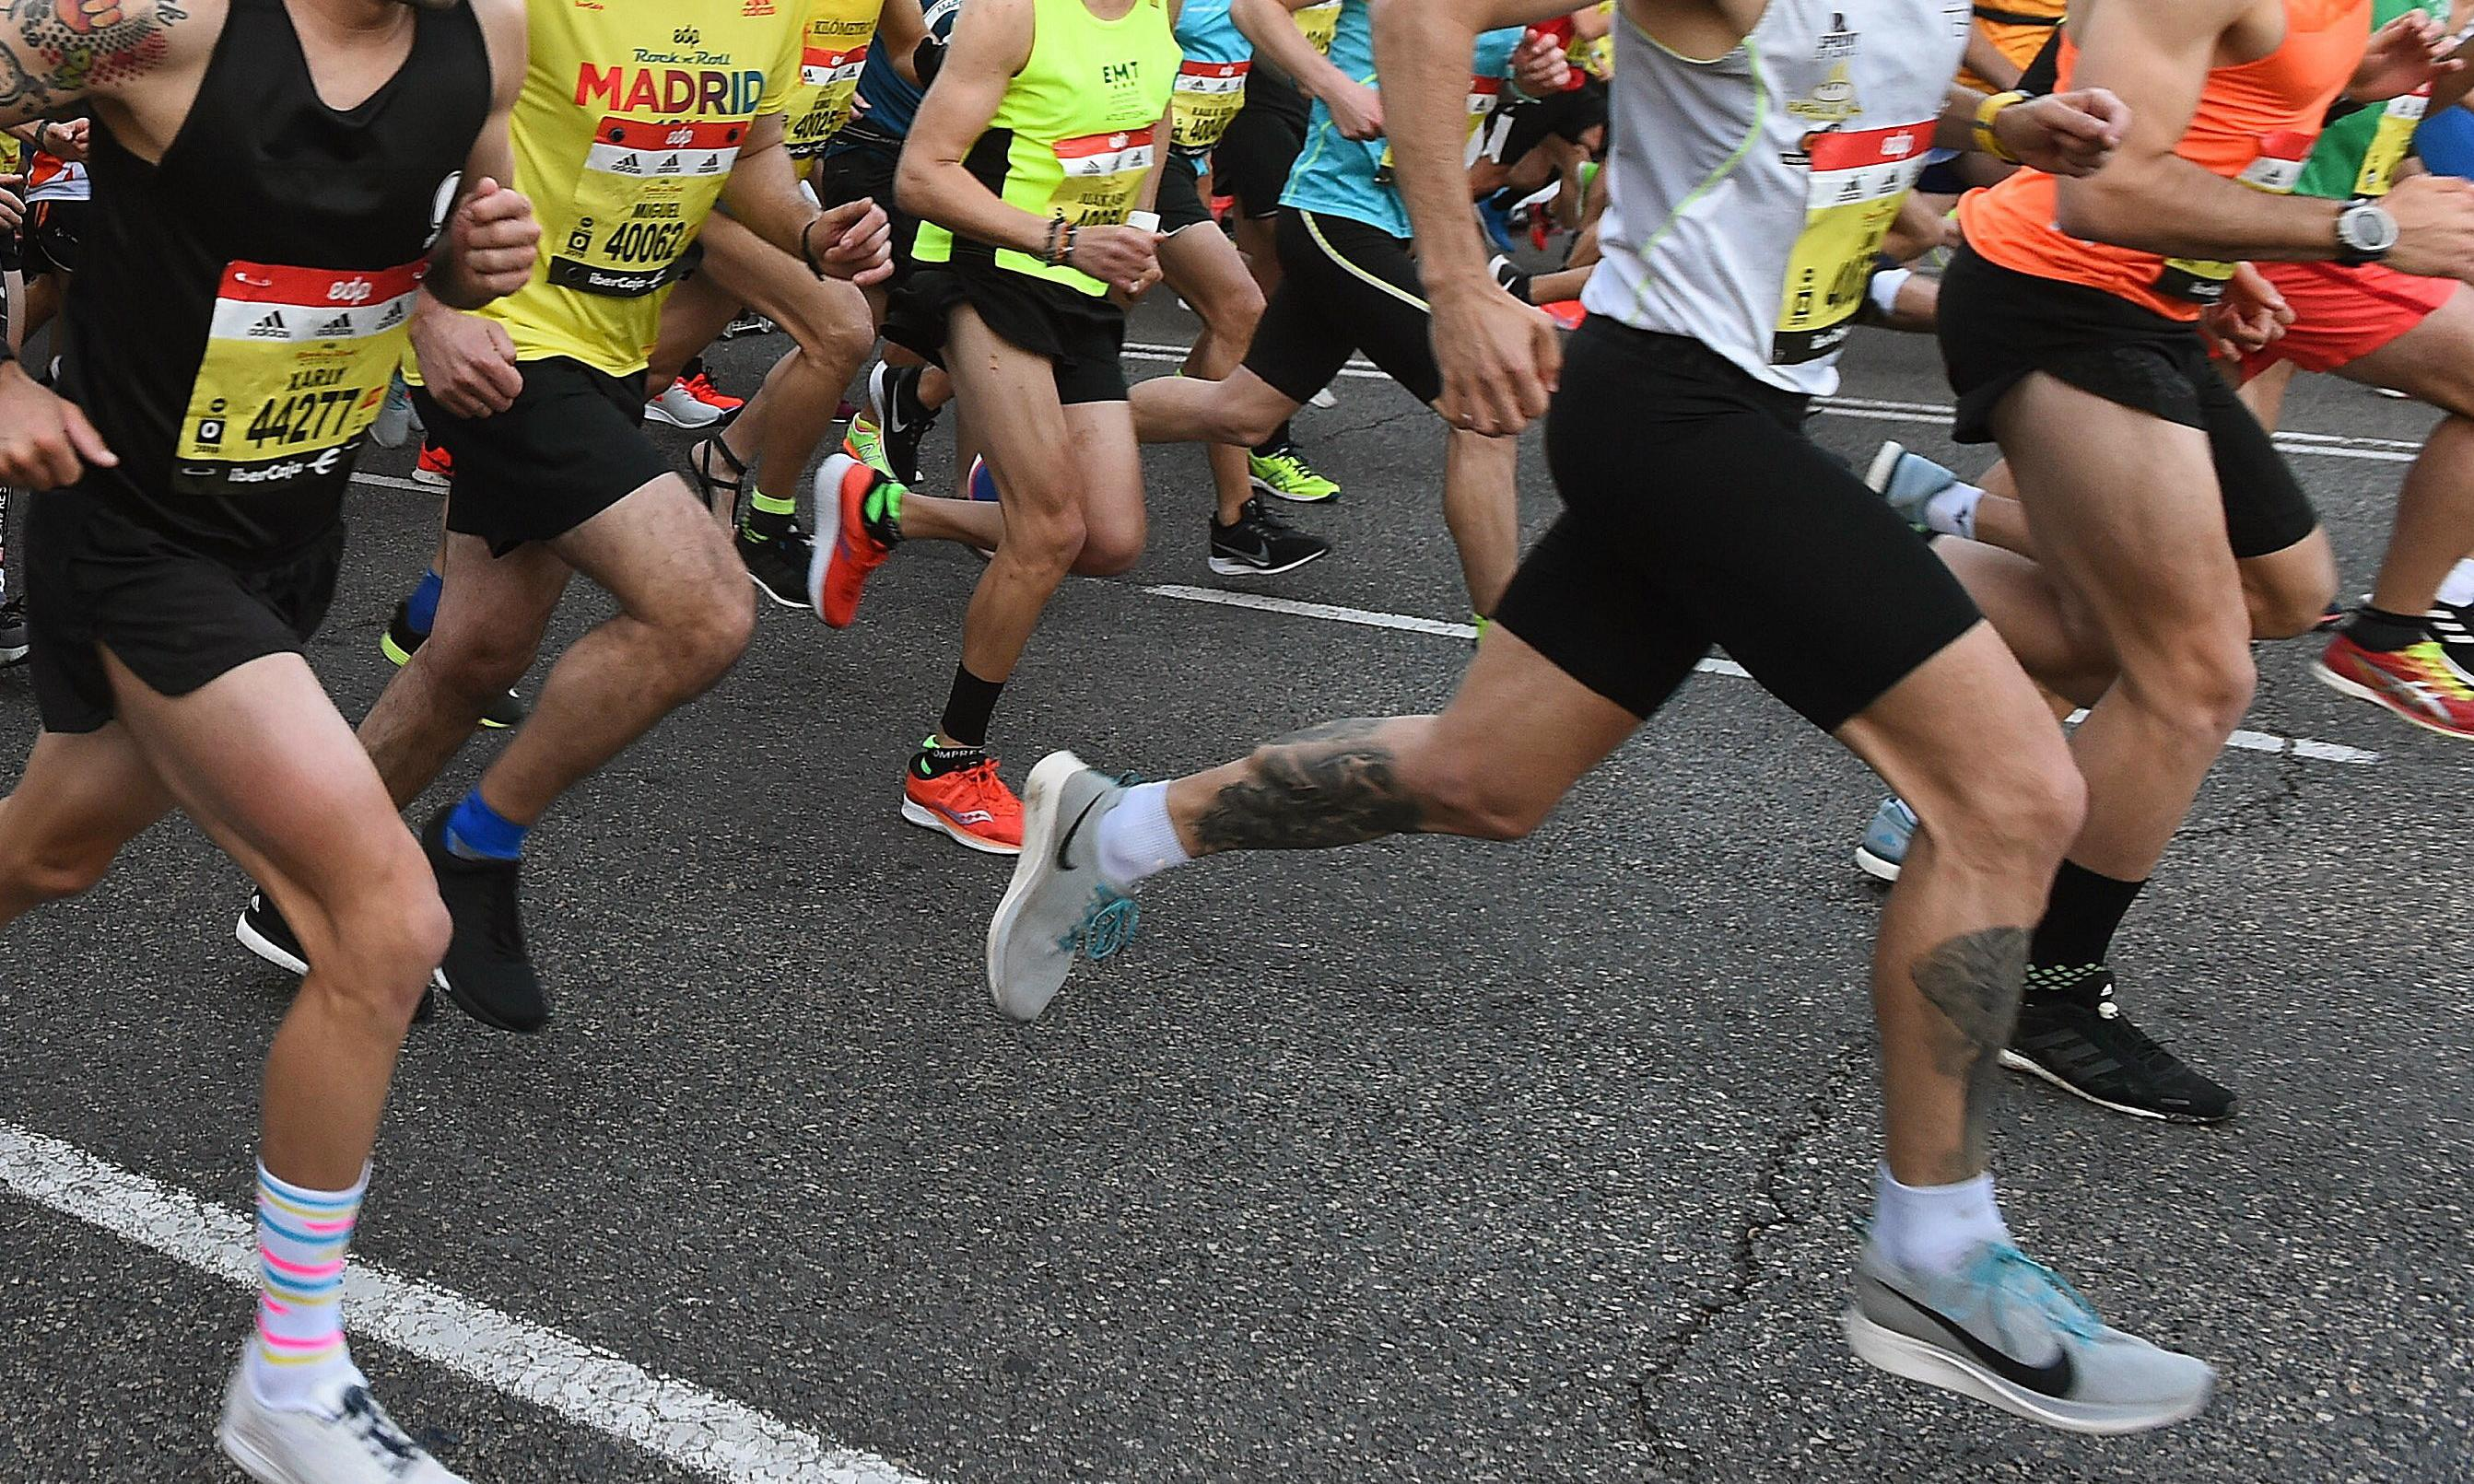 Trieste half-marathon backtracks on exclusion of Africans